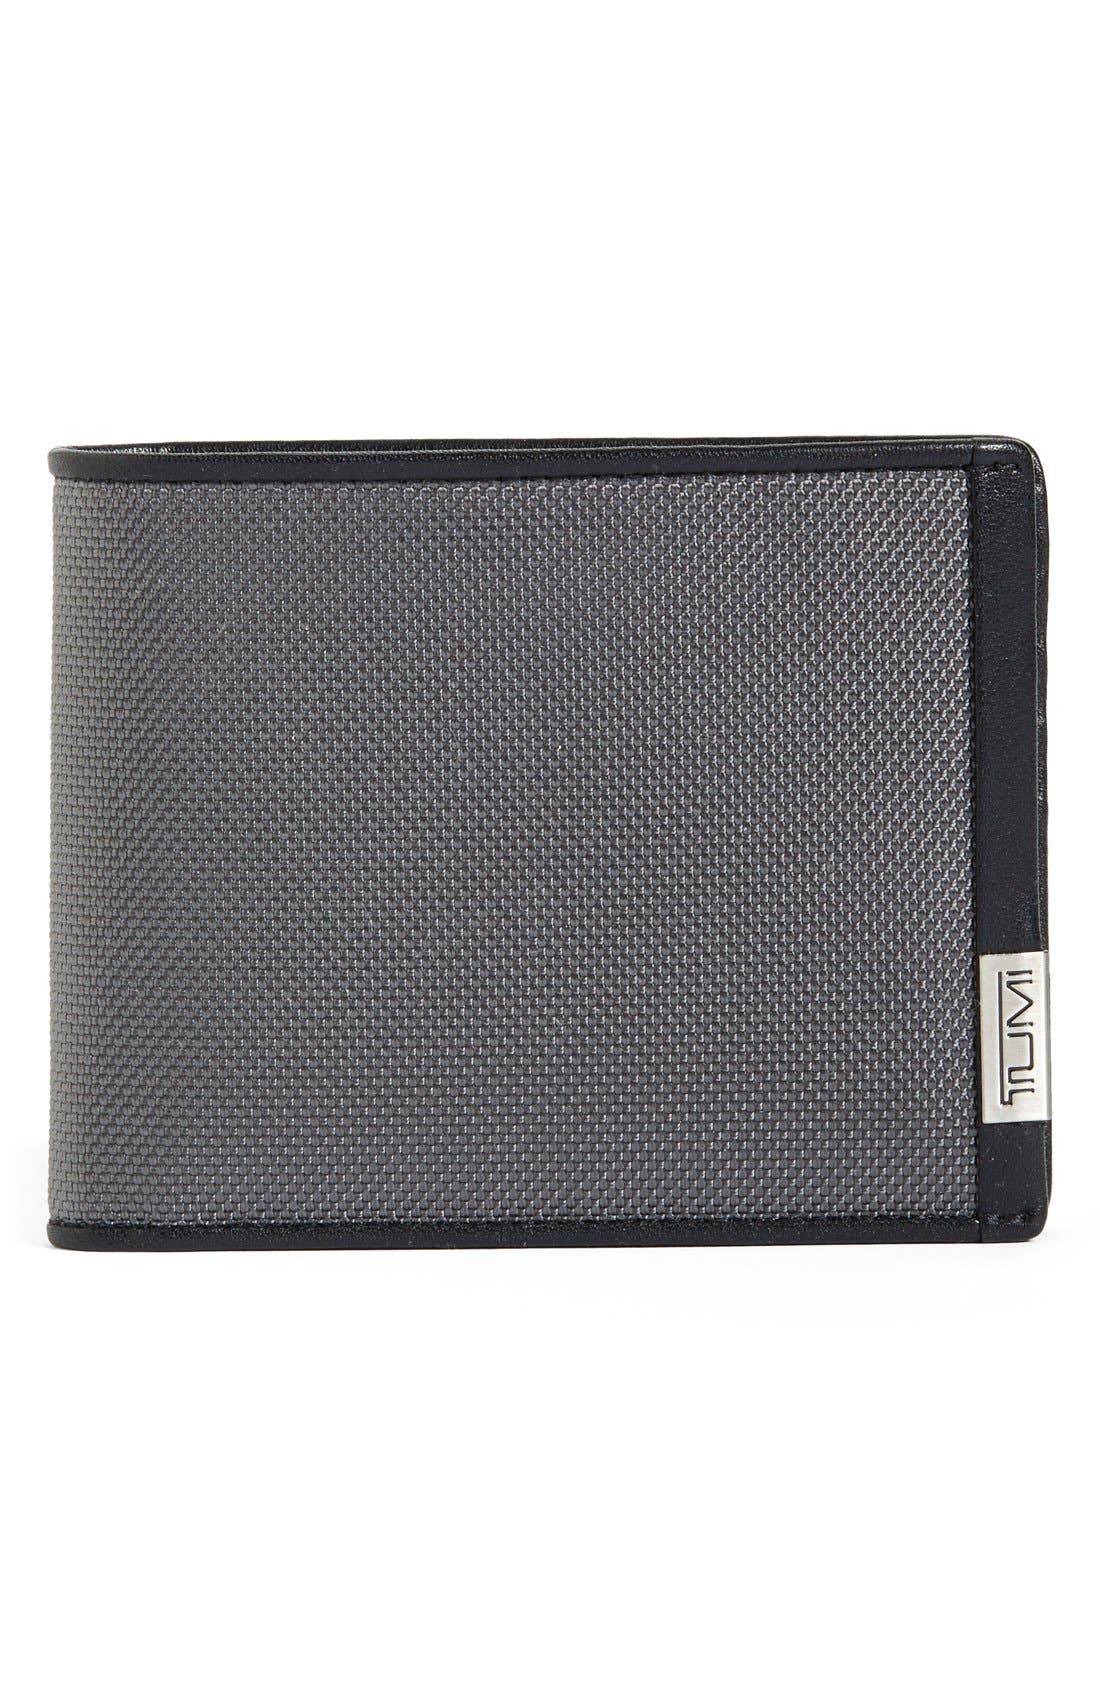 TUMI Alpha Removable Passcase ID Wallet